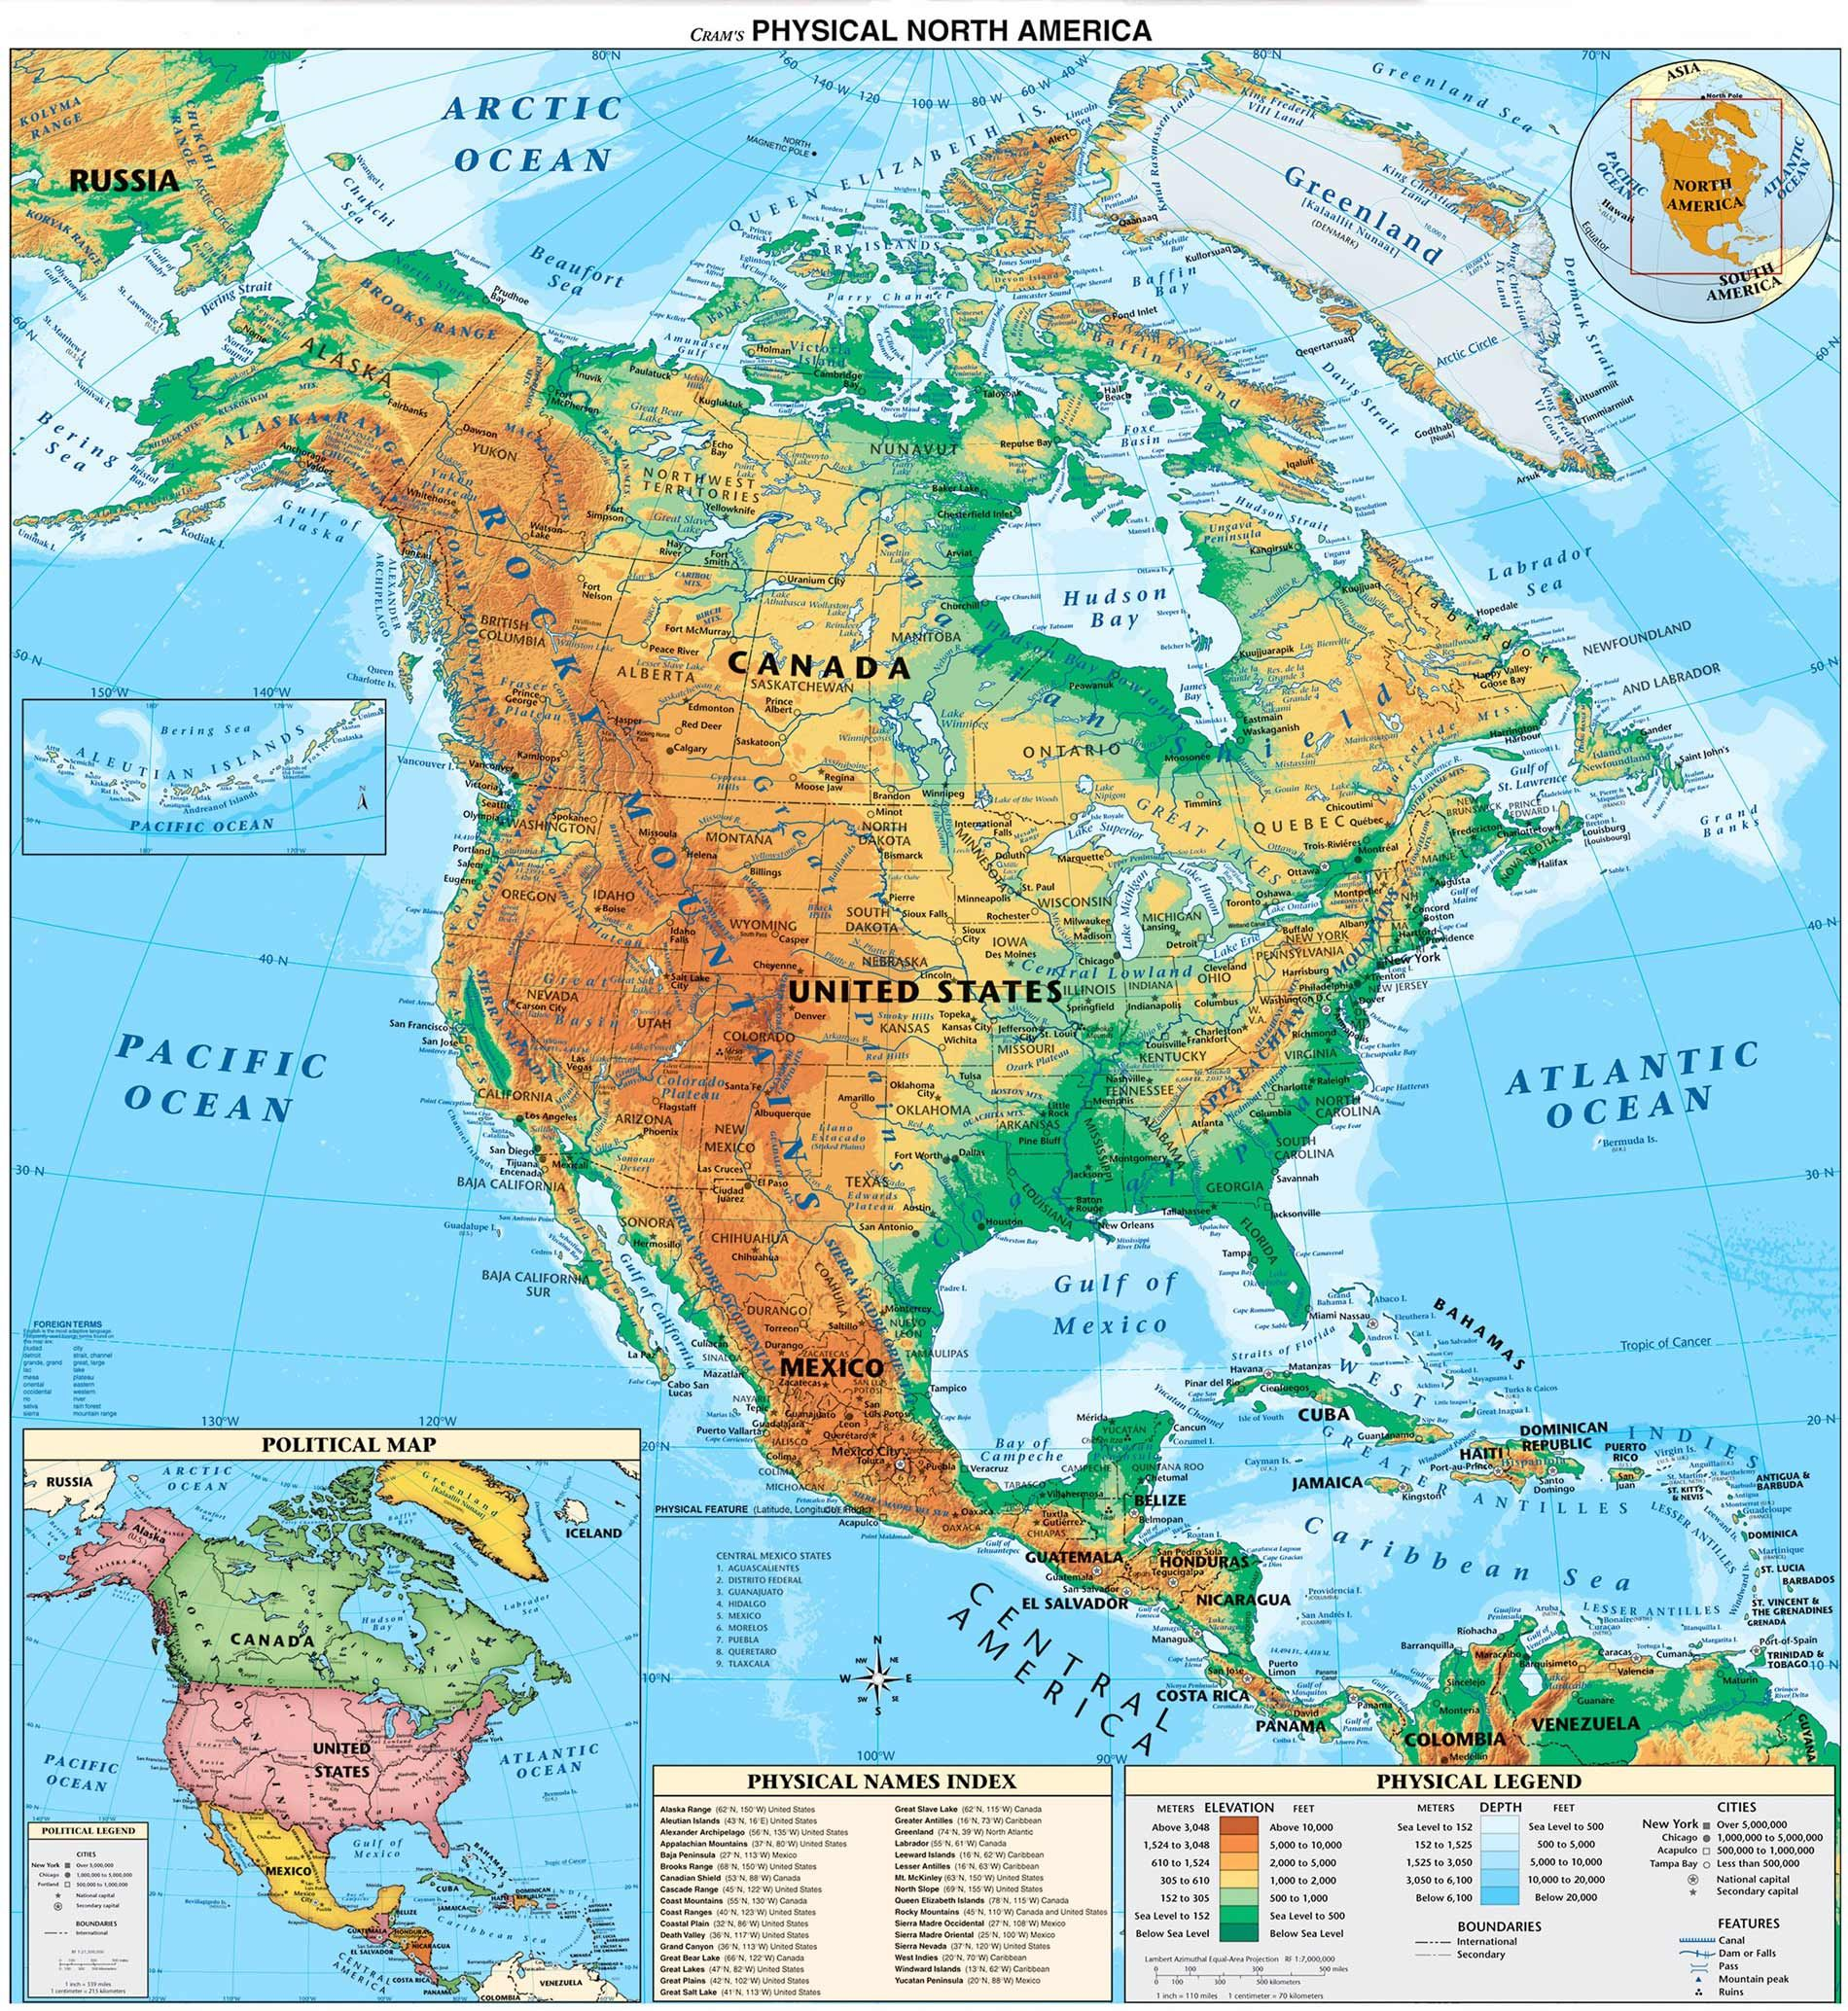 NOrth America | Education | North america map, States in ... on map of south america, map of bermuda, map of the americas, map of paraguay, map of florida, map of united states, map of europe, map of ohio, map of china, map of caribbean, map of italy, map of mexico, map of usa, map of france, map of honduras, map of the united states, map of texas, map of africa, map of nicaragua, map of pacific islands, map of el salvador, map of bahamas, map of canada, map of belize, map of asia, map of middle america, map of germany, map of dominican republic, world map, map of guatemala, map of the world, map of us, map of west indies, map of north carolina, map of western hemisphere, map of middle east, map of california, map of costa rica, map of guam,